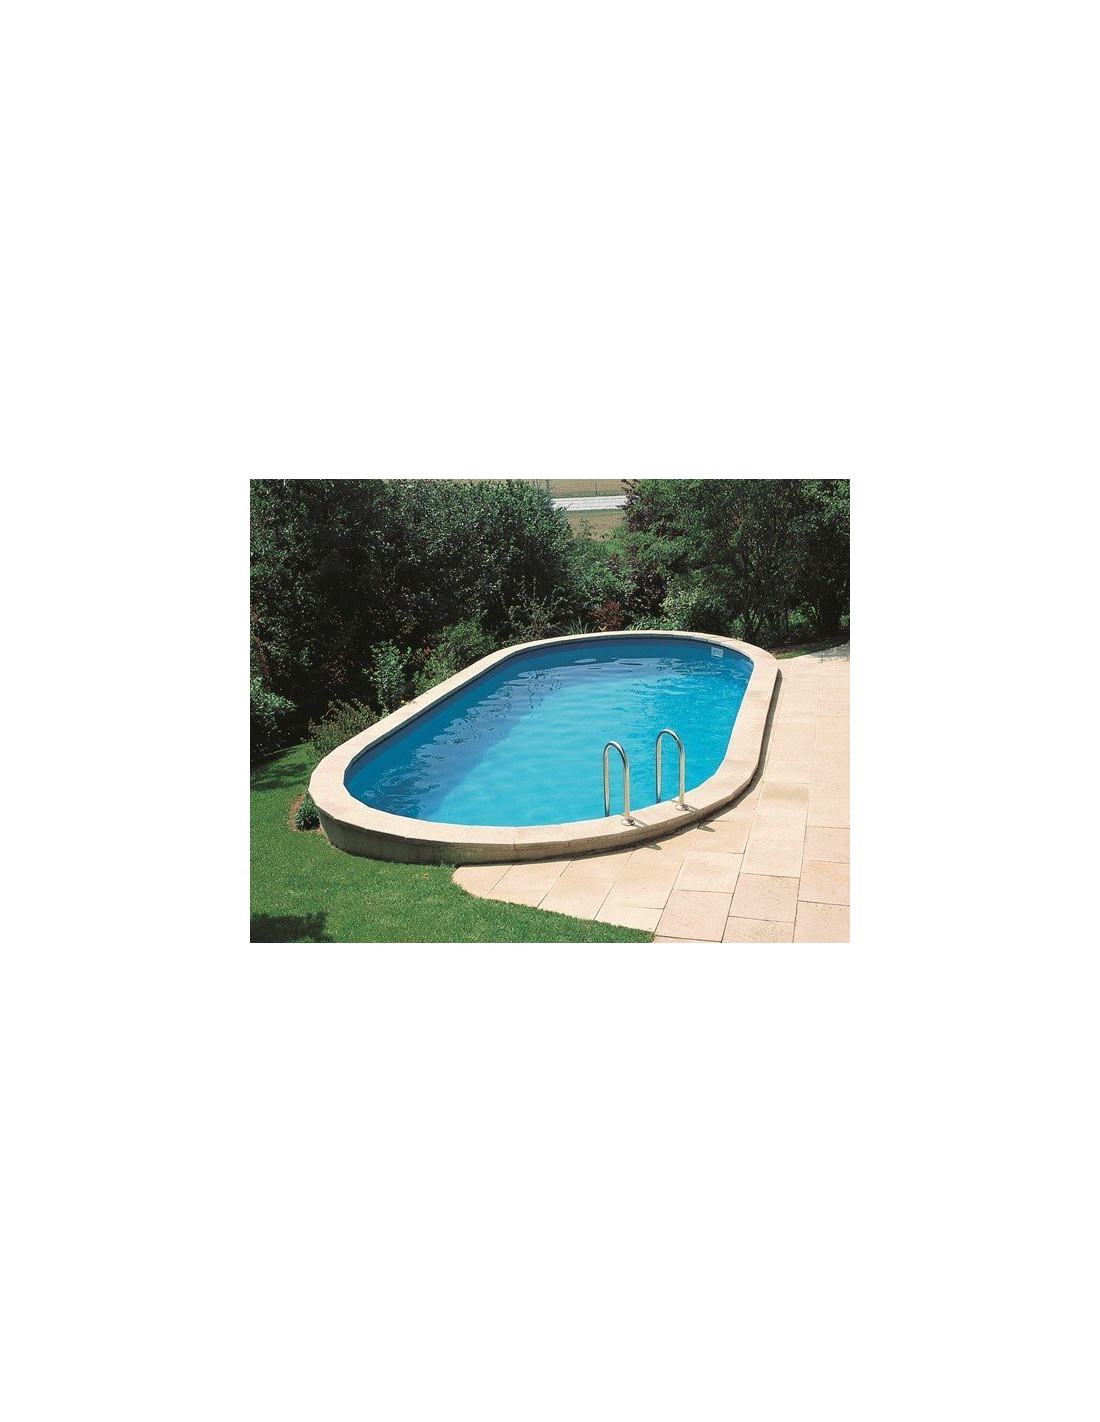 Kit piscine enterr e piscine enterr e kit pas cher for Kit piscine pas cher